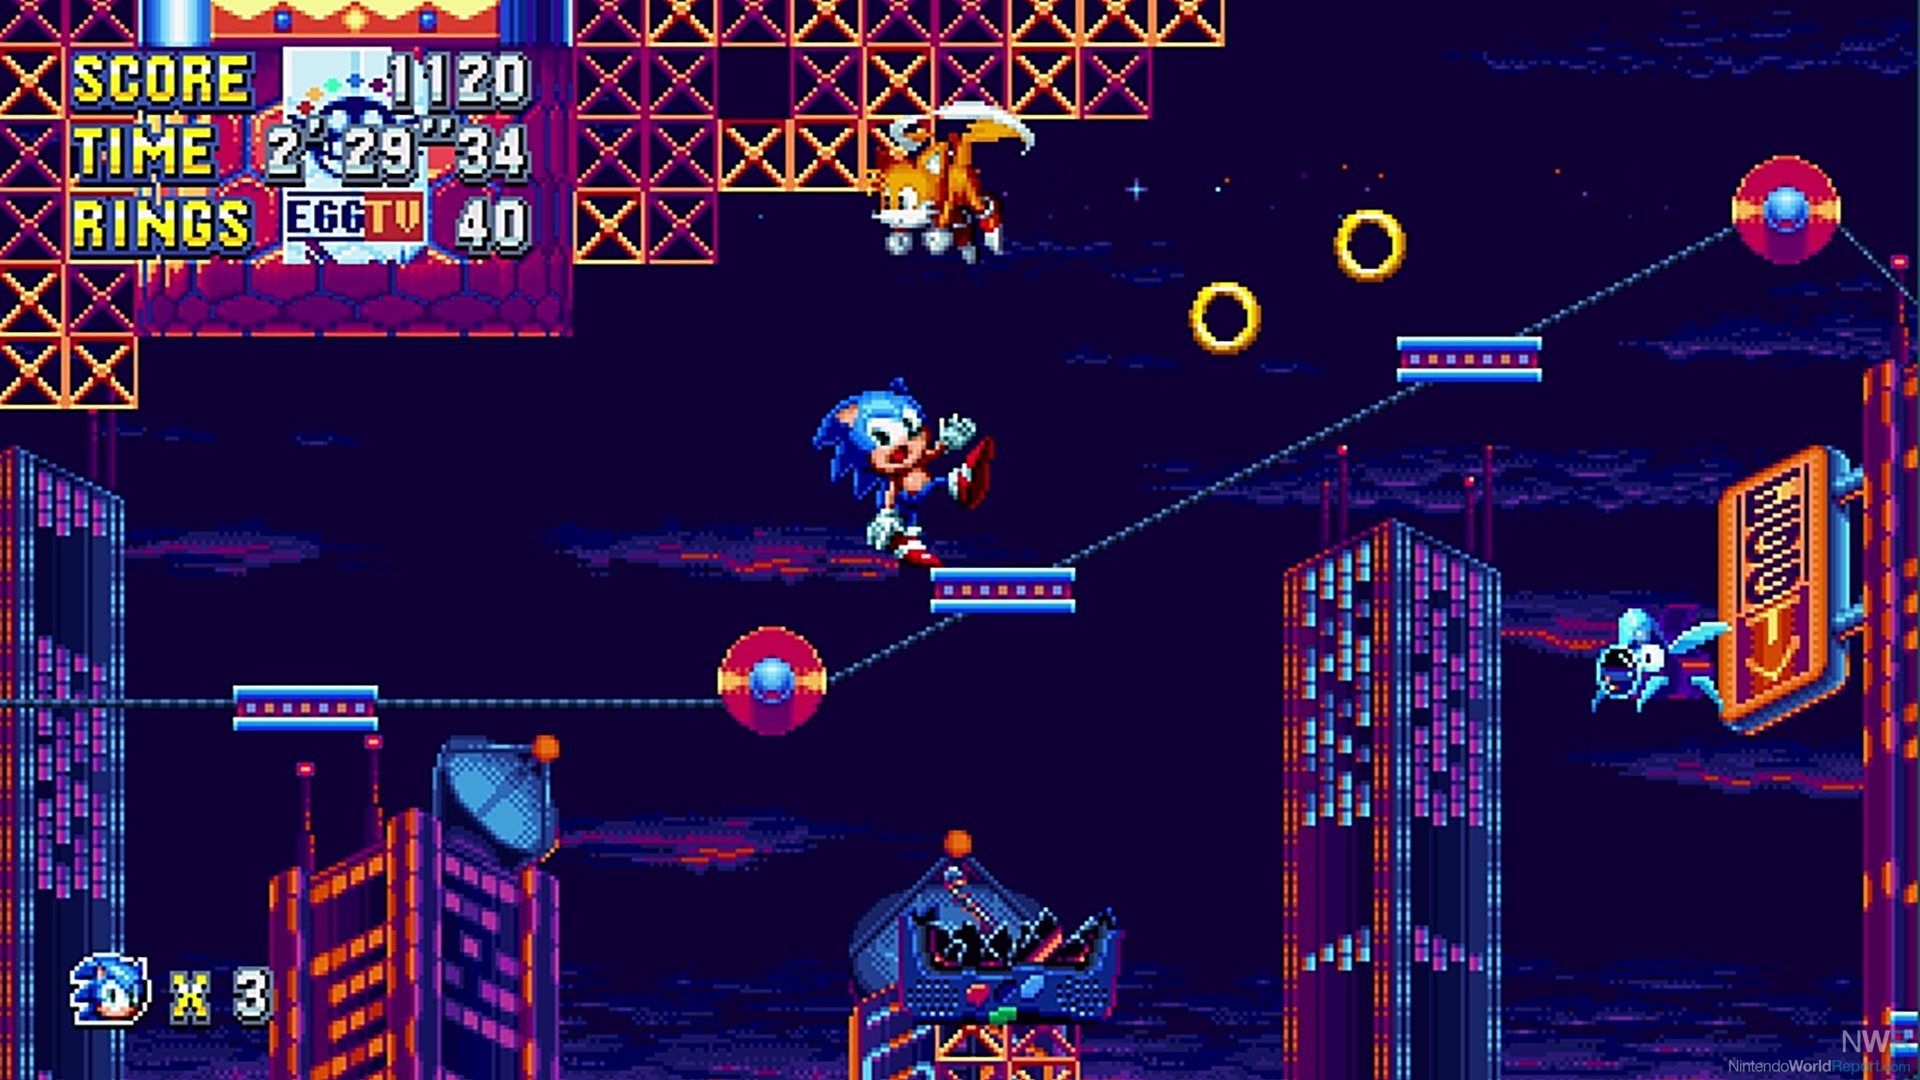 Sonic Mania's New Trailer Highlights Sweet Animation, Hints at New Zone